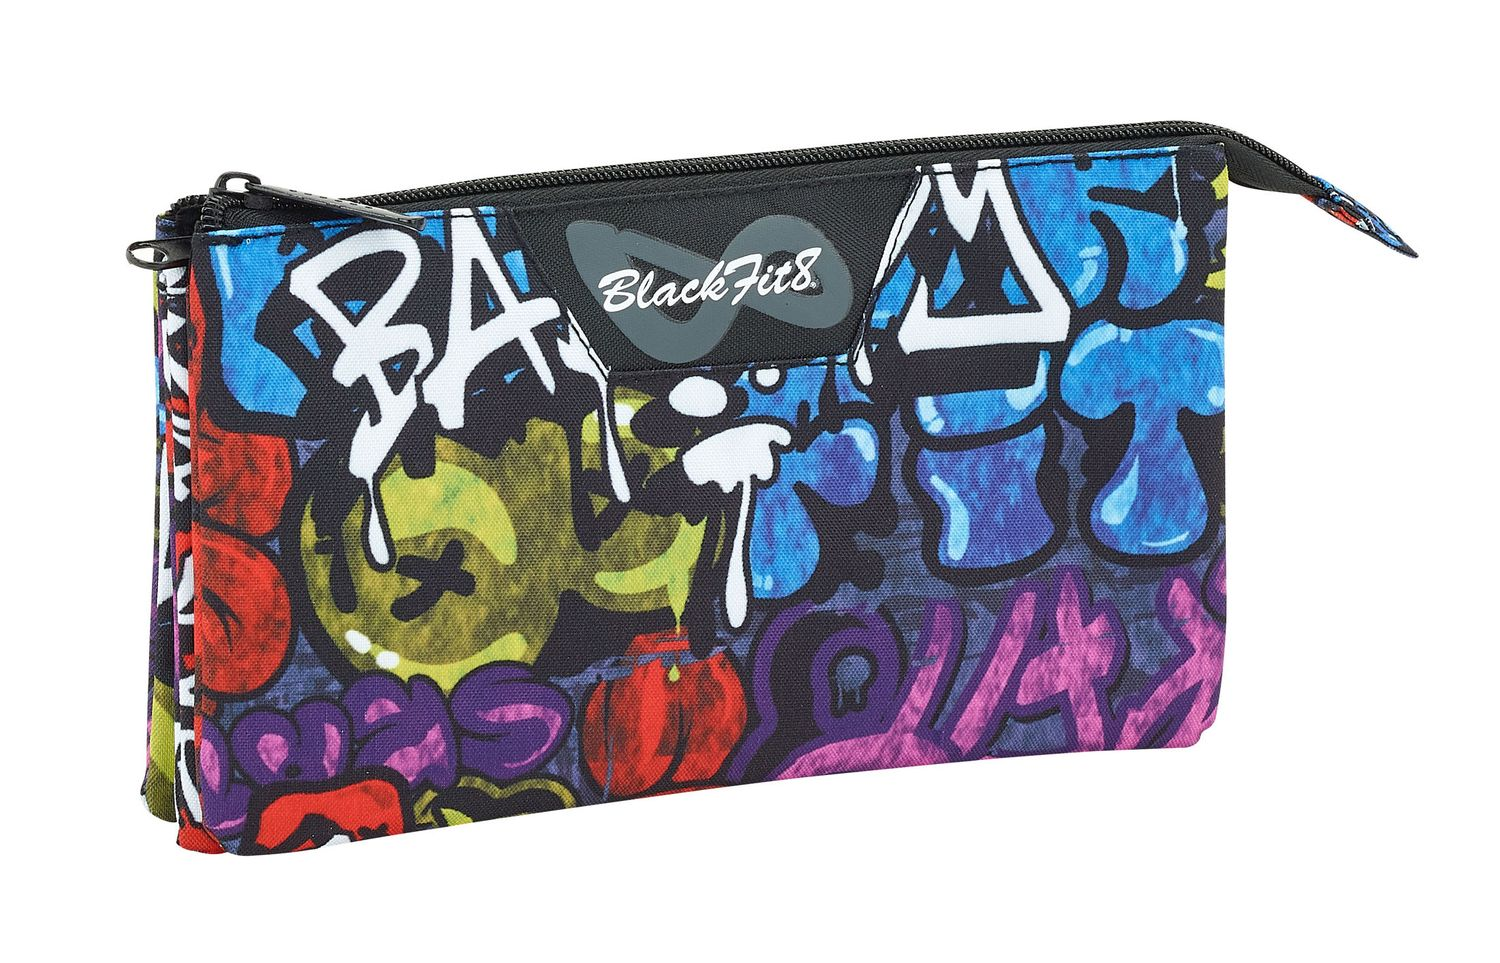 Blackfit Bad Boy Triple pencil case